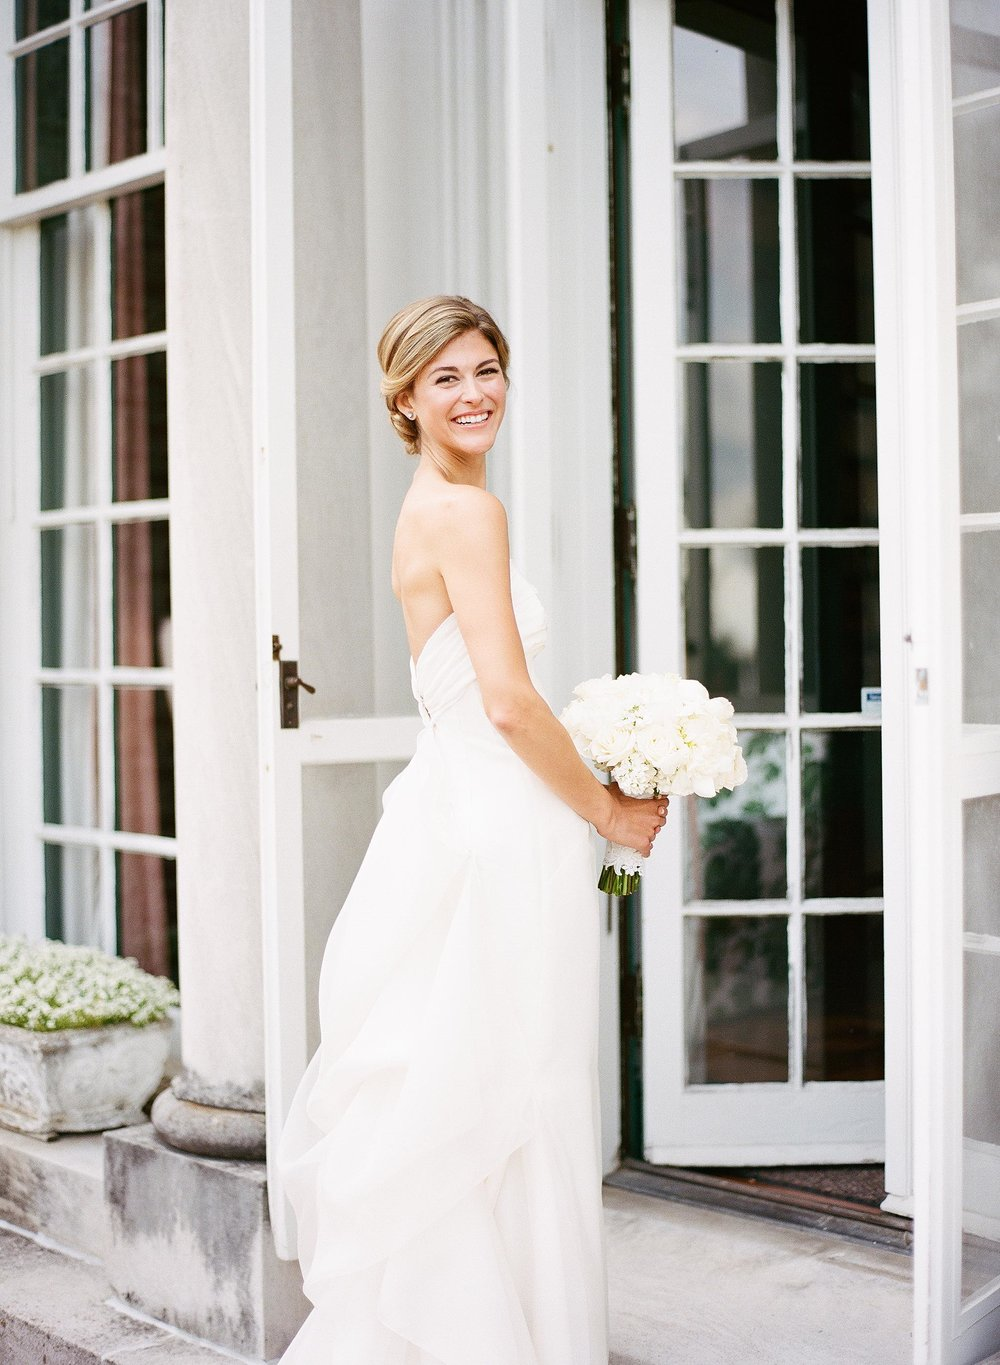 Mary Beth + Nick    Oxmoor Estate, Kentucky   The moment we unzipped the Jin Wang bridal gown bag we knew this wedding was going to be special.  People traveling to Kentucky from afar to celebrate with this beautiful couple.  Oxmoor Estates pristine acres of garden provided the perfect venue for Lauren Chitwood's team to set the stage for this beautiful wedding!  A palette of whites and soft blushes let everyones emotion shine brightly on this special day  To see more of this wedding  Click Here